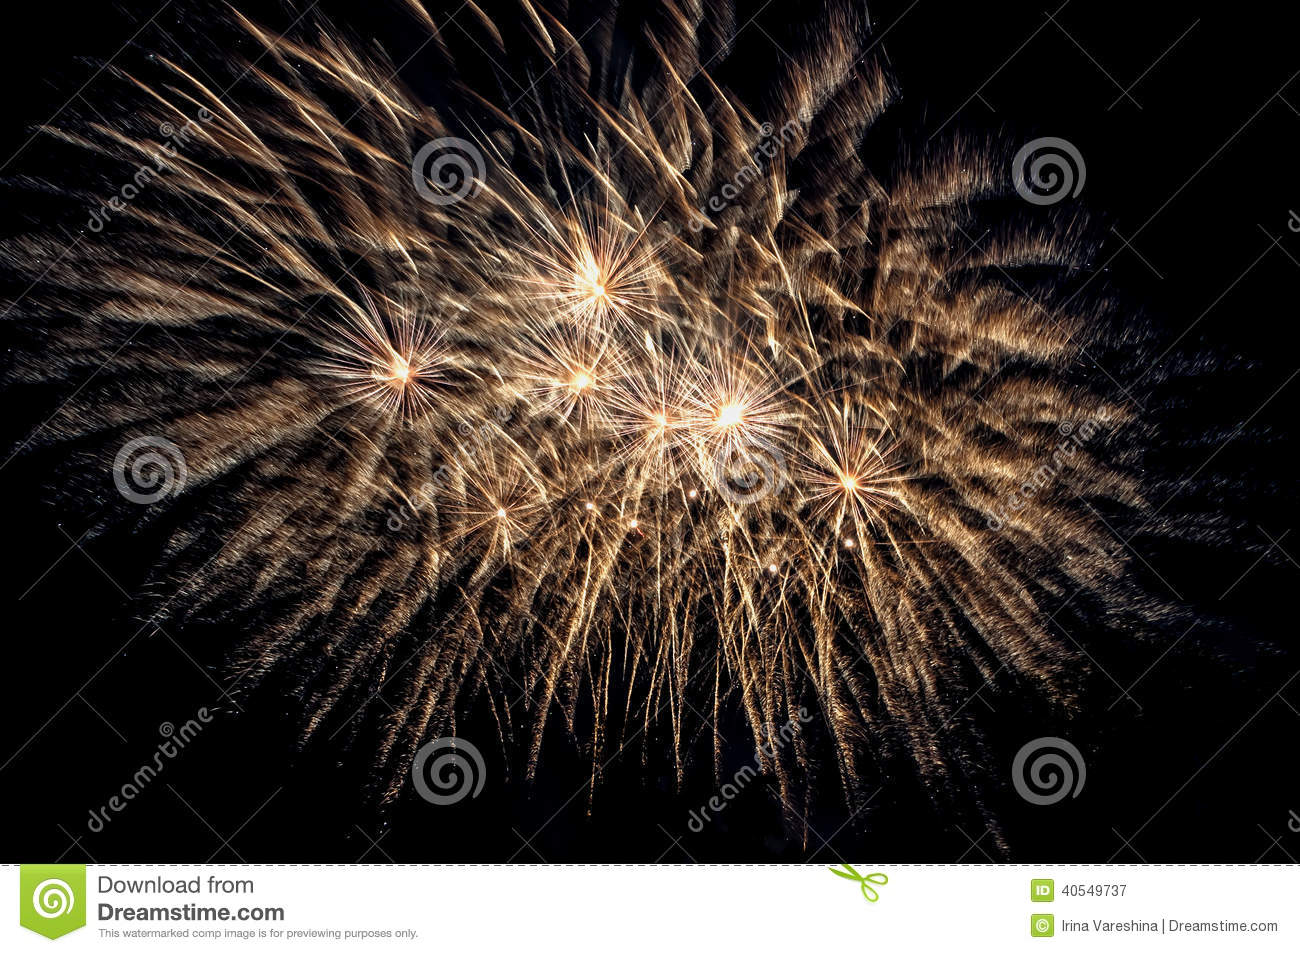 Wallpaper Salute Sky Holiday Colorful 3376x4220: Fireworks Salute Stock Photo